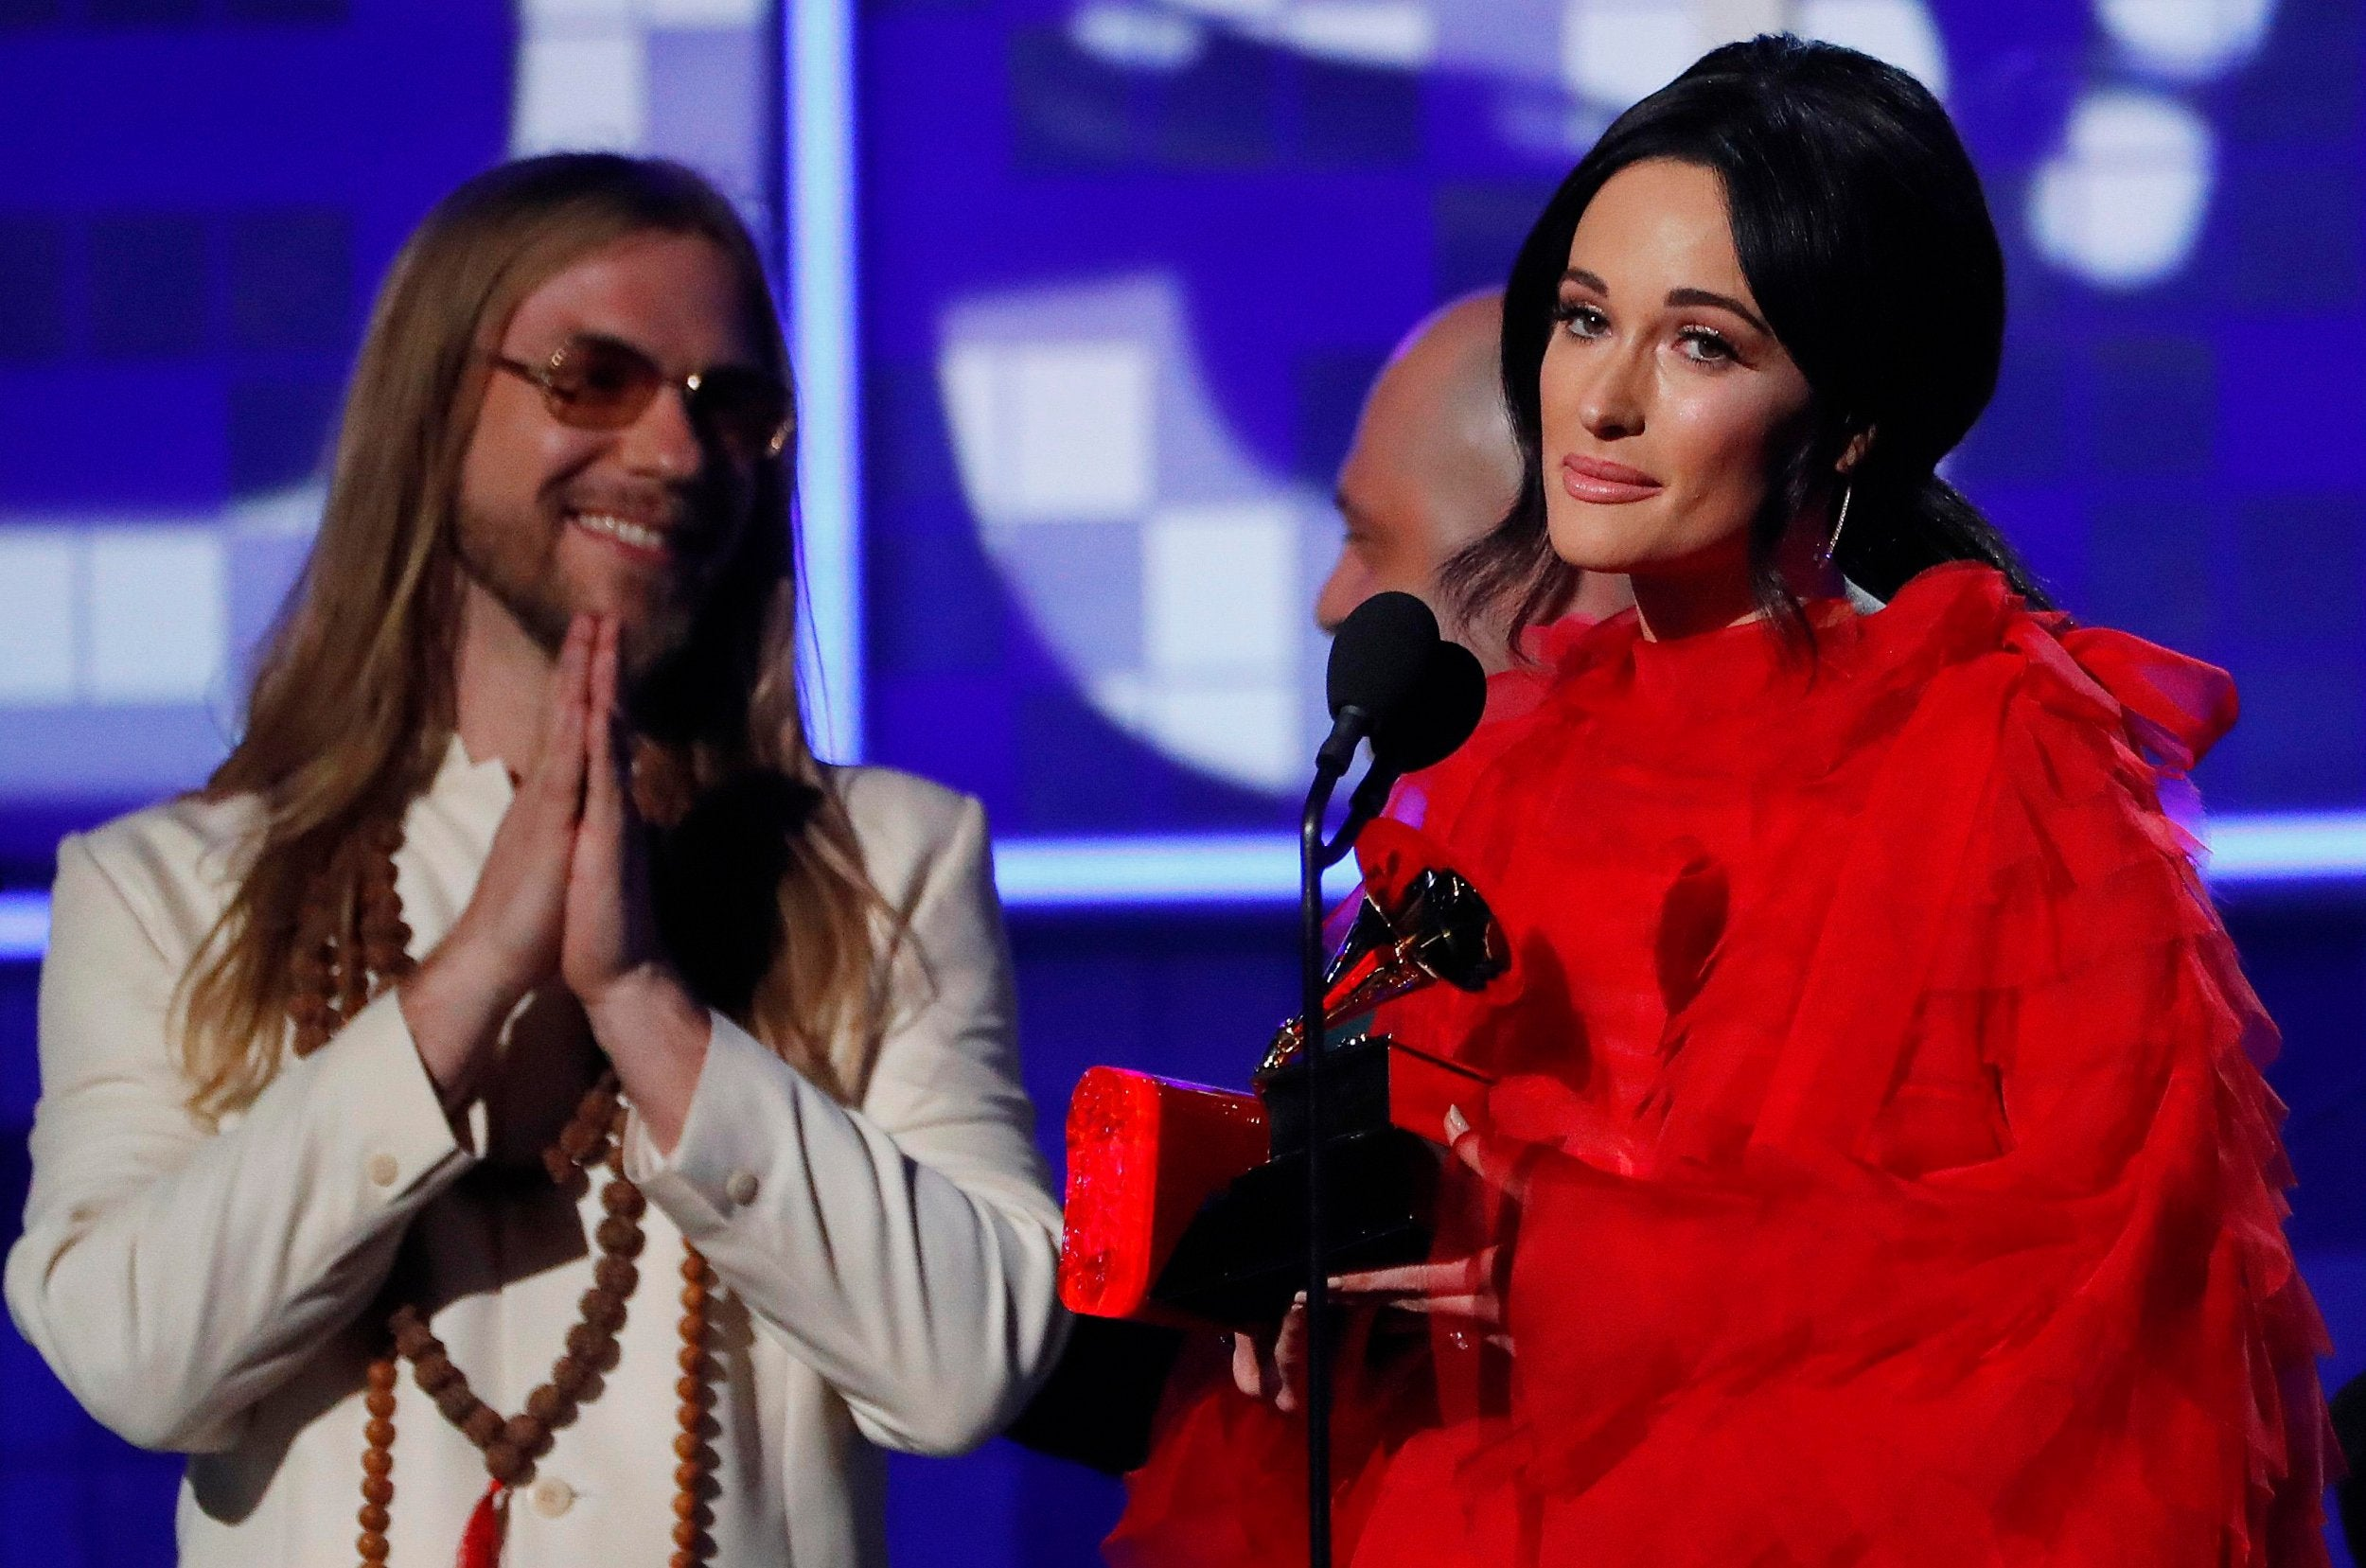 Grammys 2019: Kacey Musgraves wins Album of the Year on